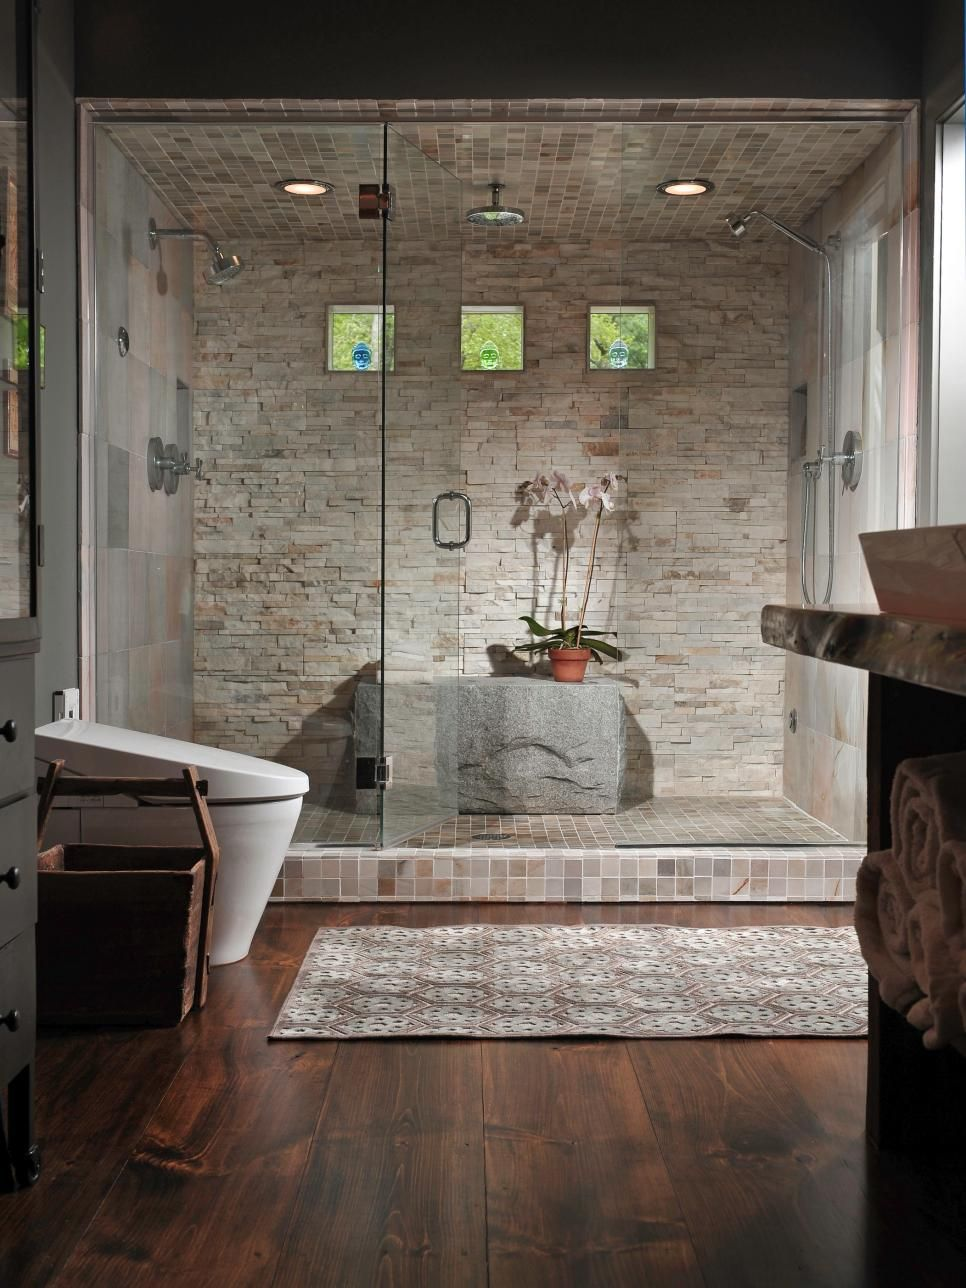 Bathroom Yoga Poses luxurious showers | steam showers, natural light and luxury